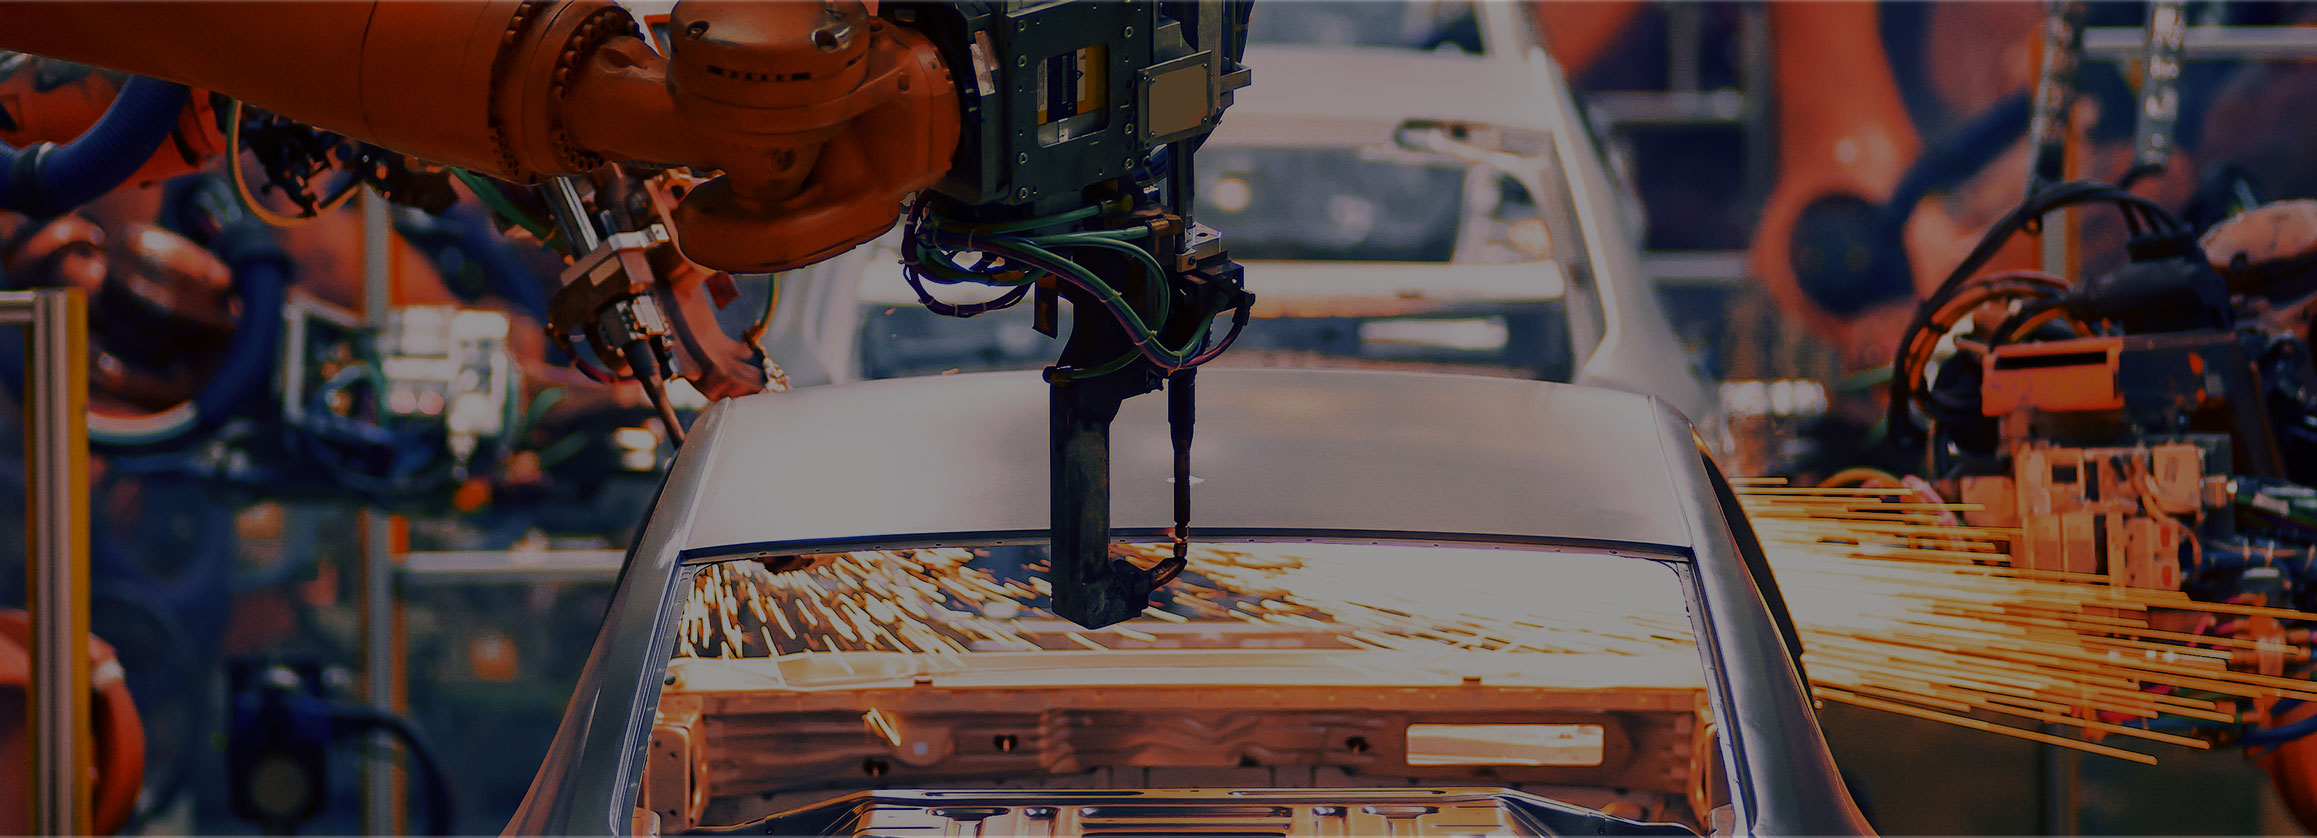 Protect Assembly Lines From Cyberattacks